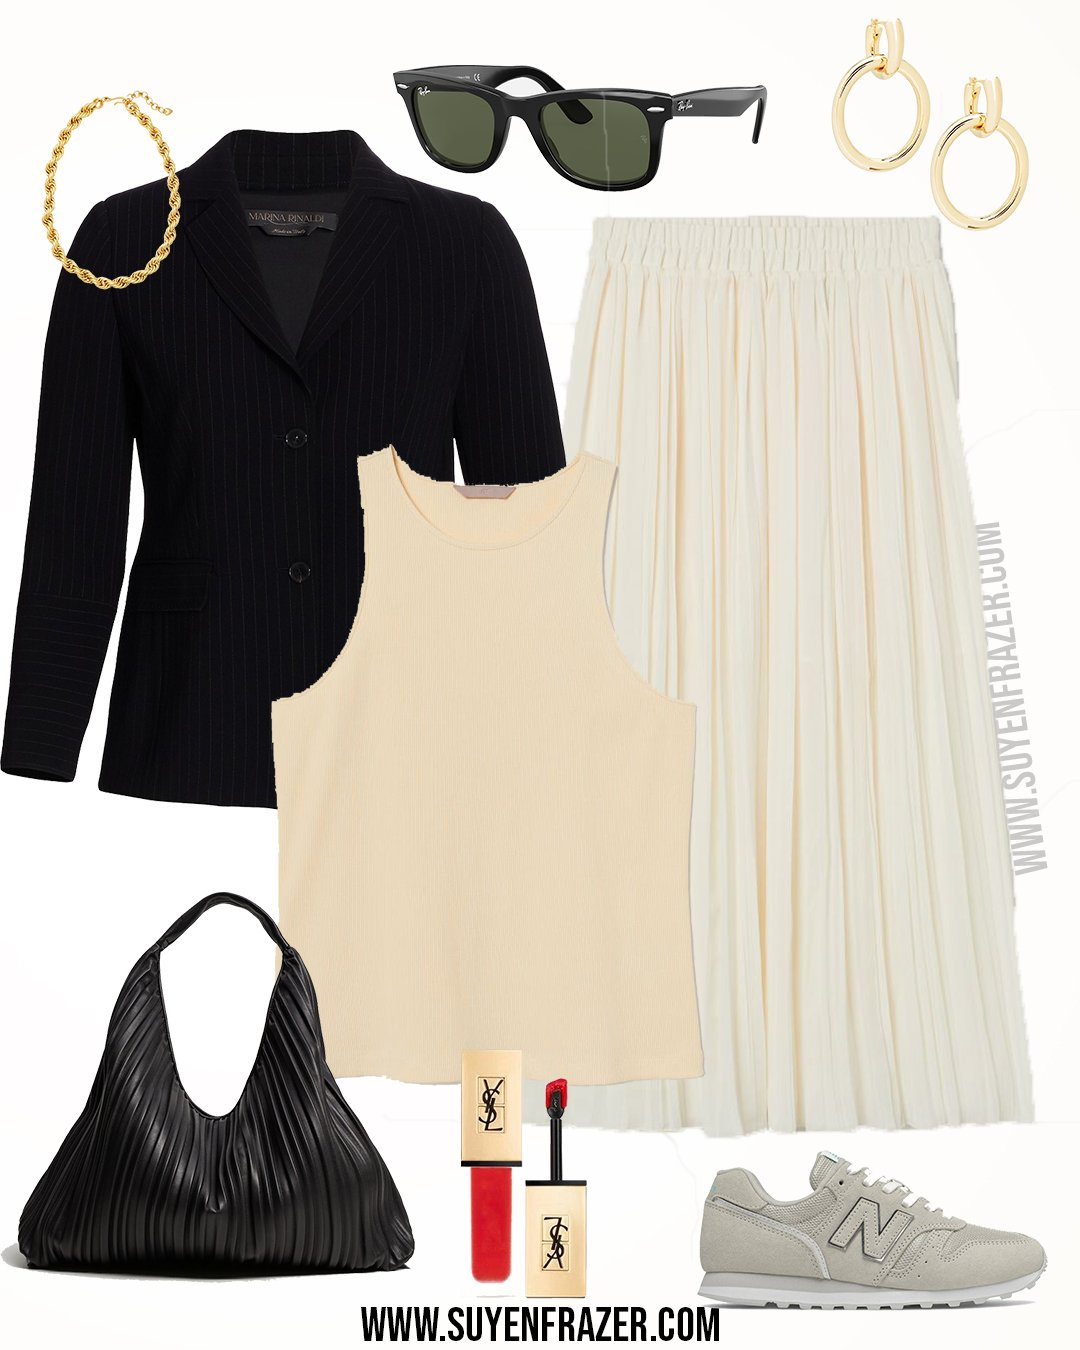 Plus-size Vest Top & Crinkle Midi Skirt Outfit